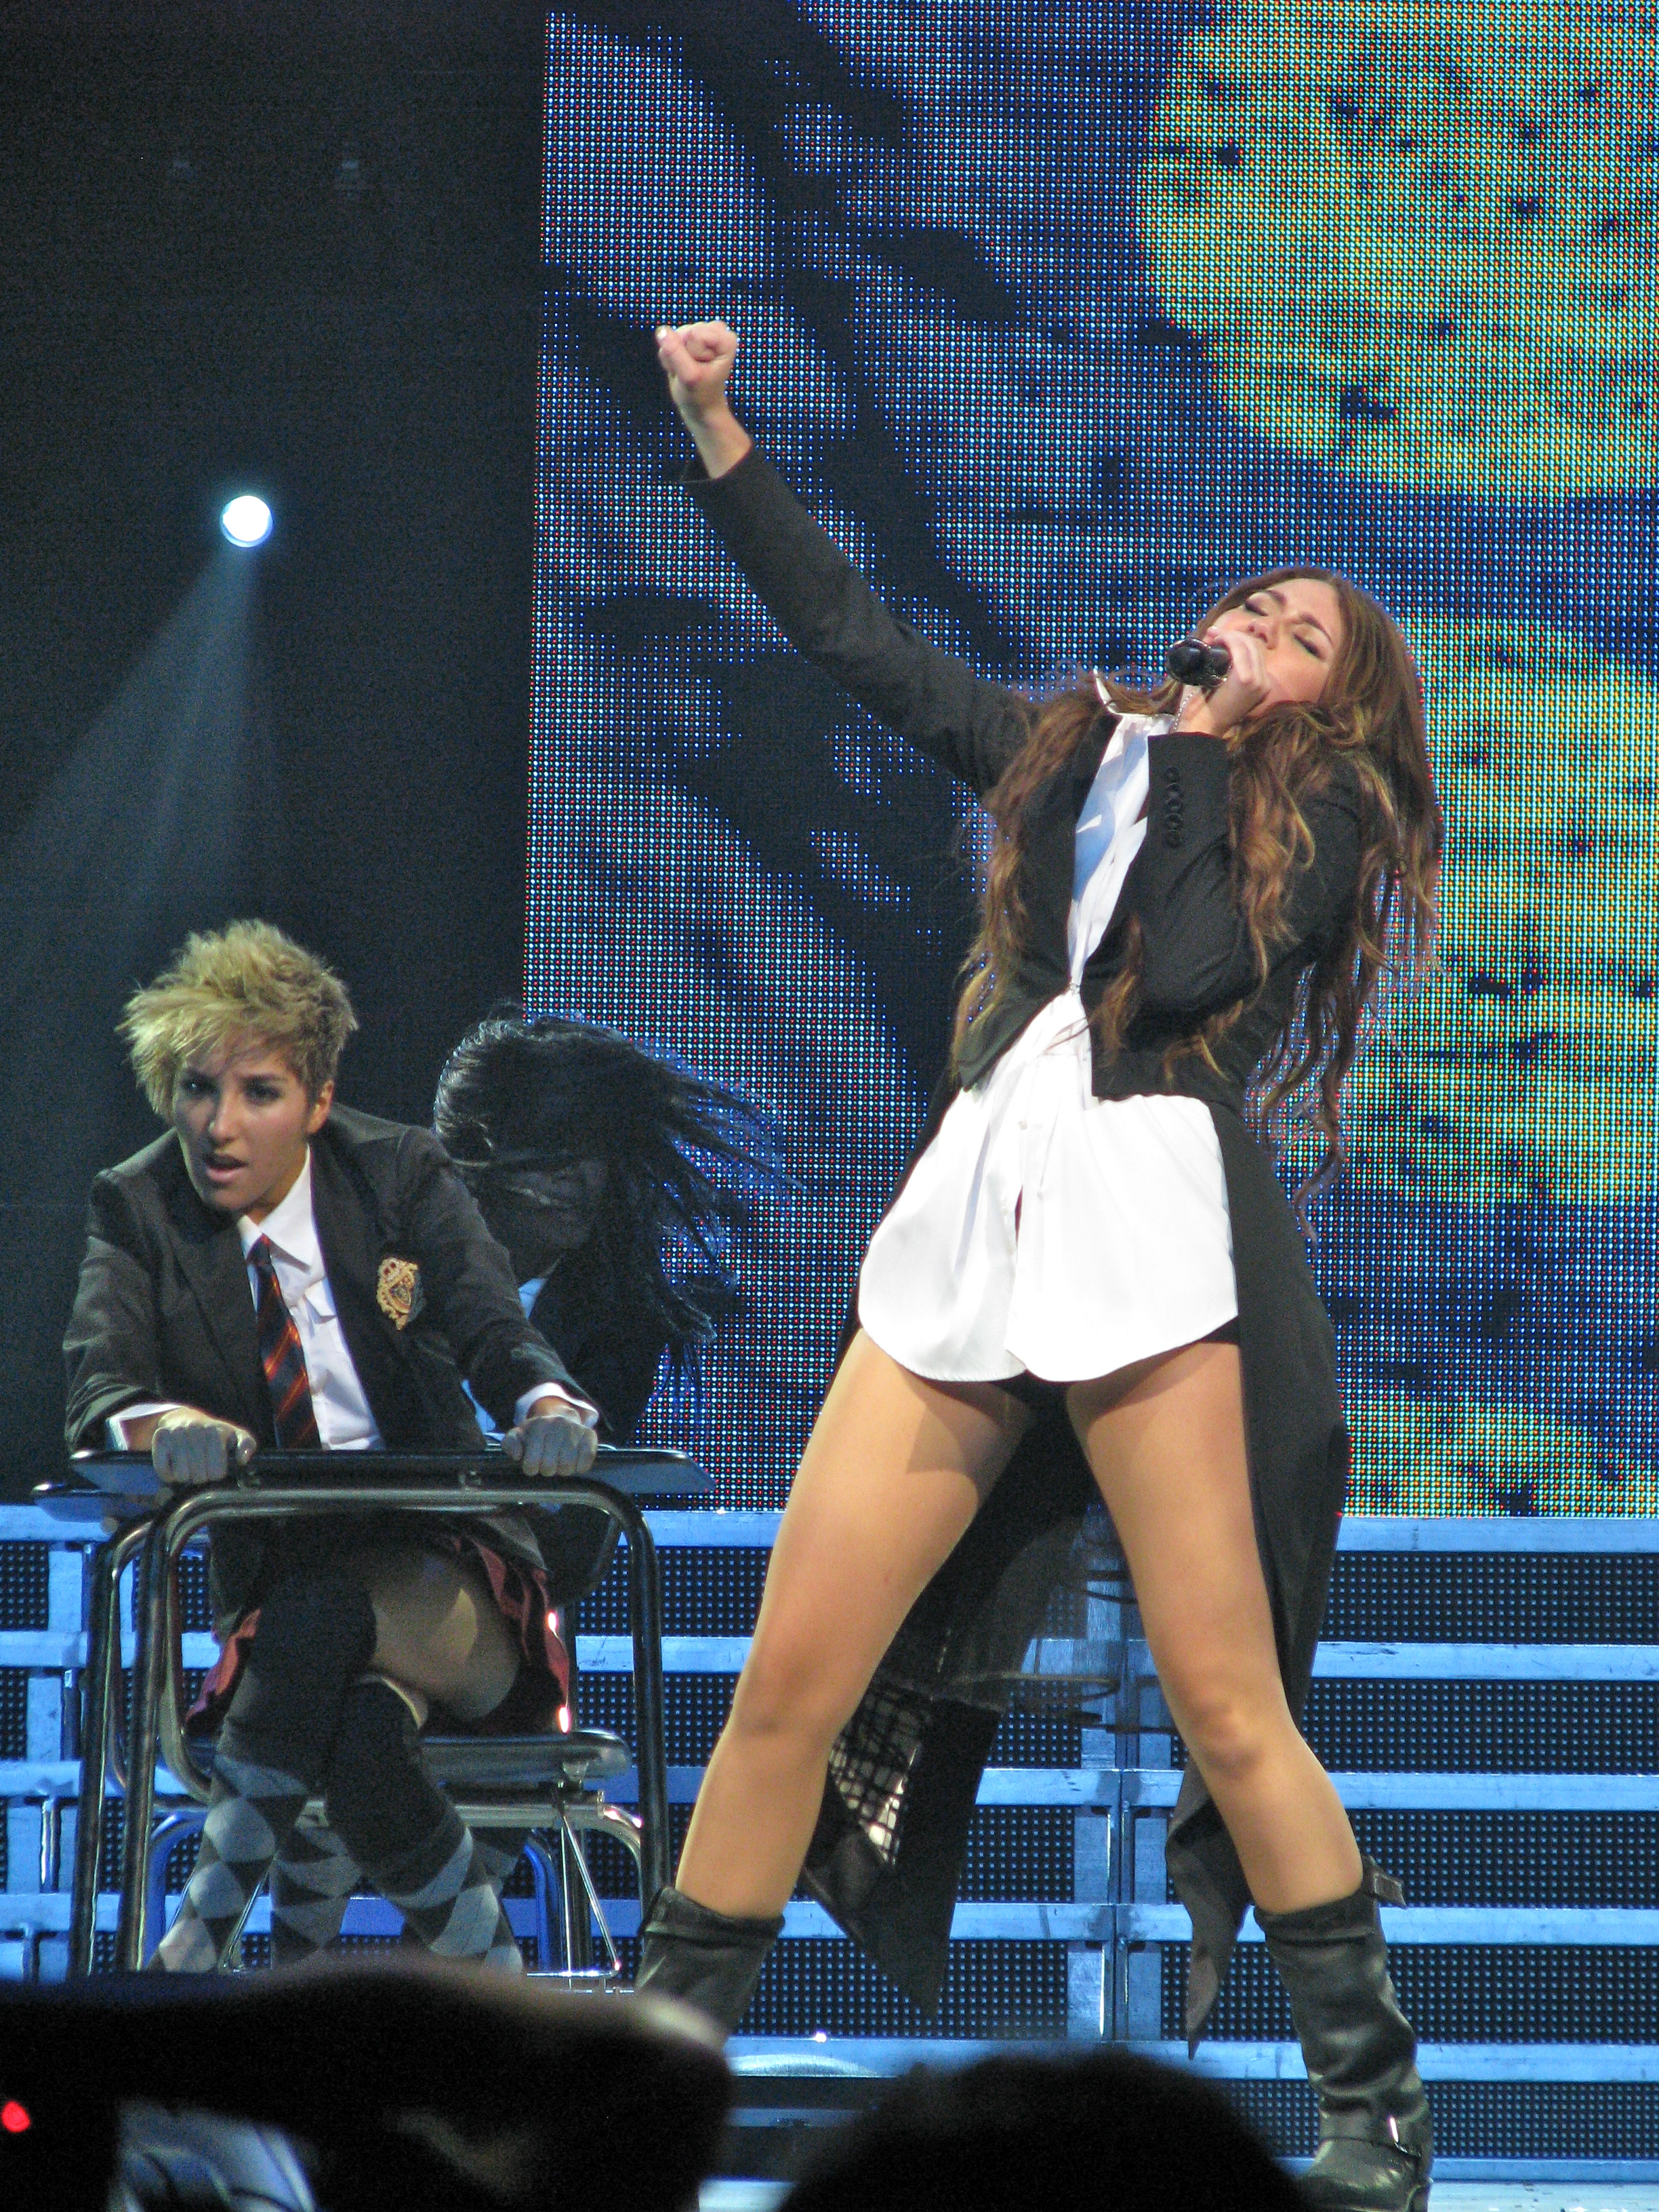 http://upload.wikimedia.org/wikipedia/commons/b/bb/Miley_Cyrus_-_Wonder_World_Tour_10.jpg